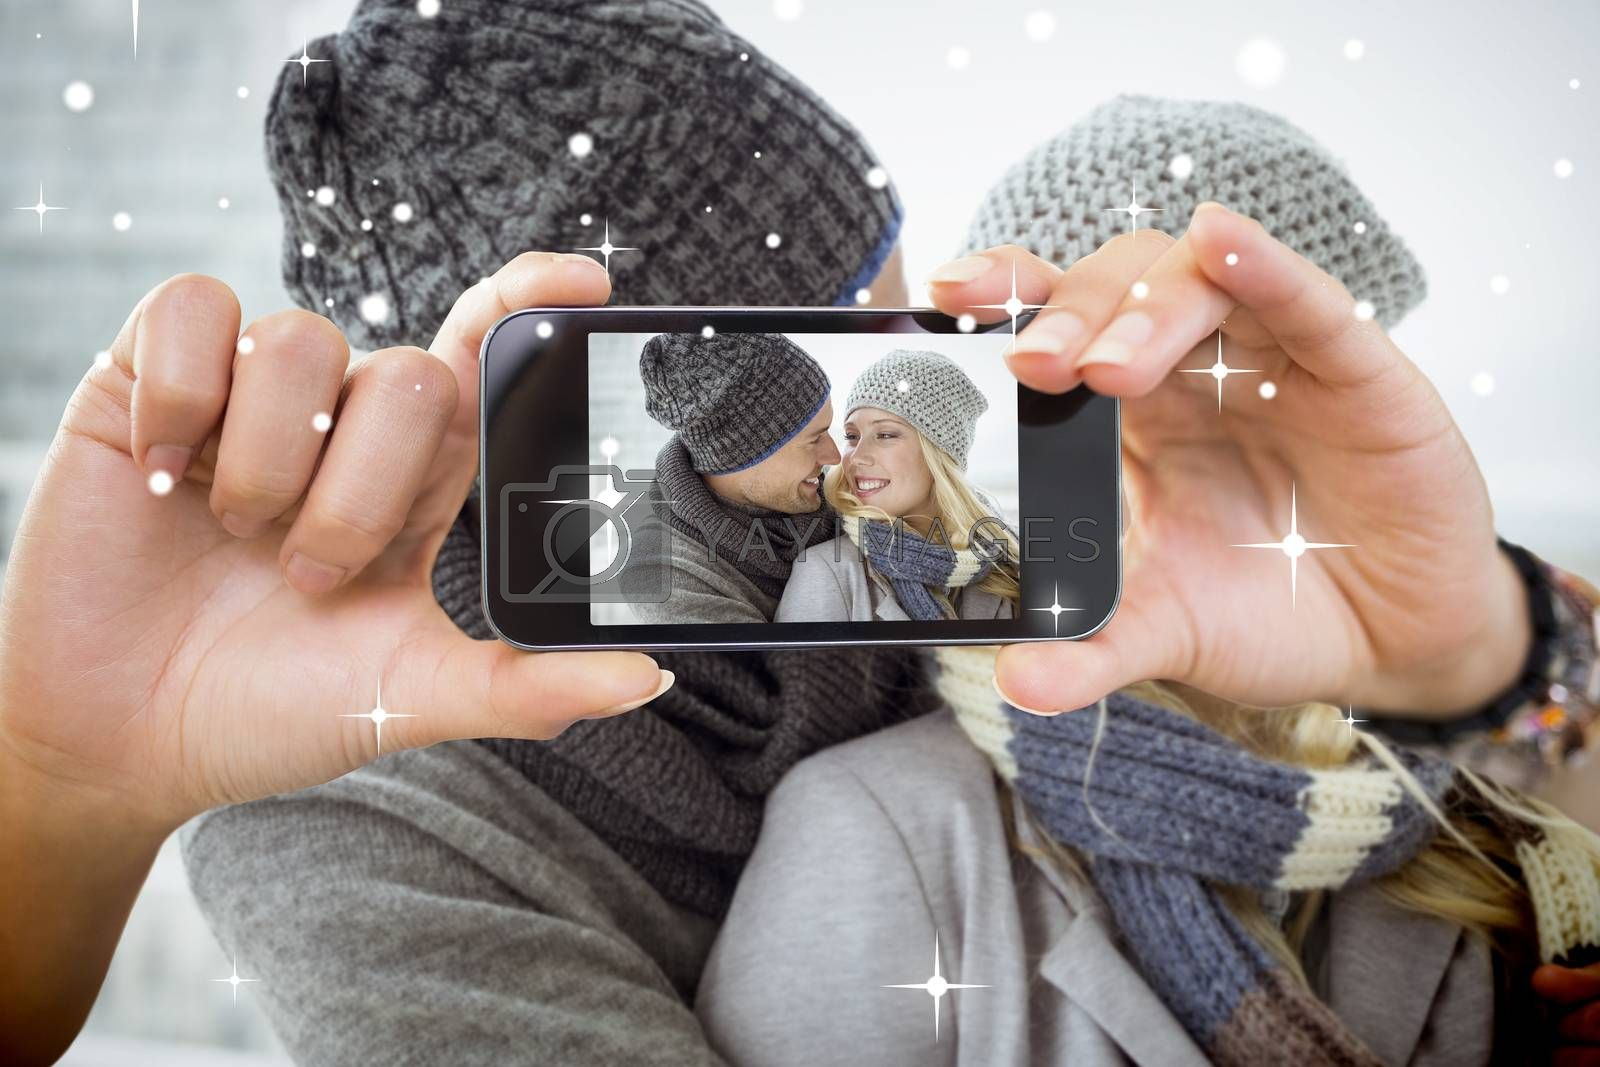 Hand holding smartphone showing photo against snow